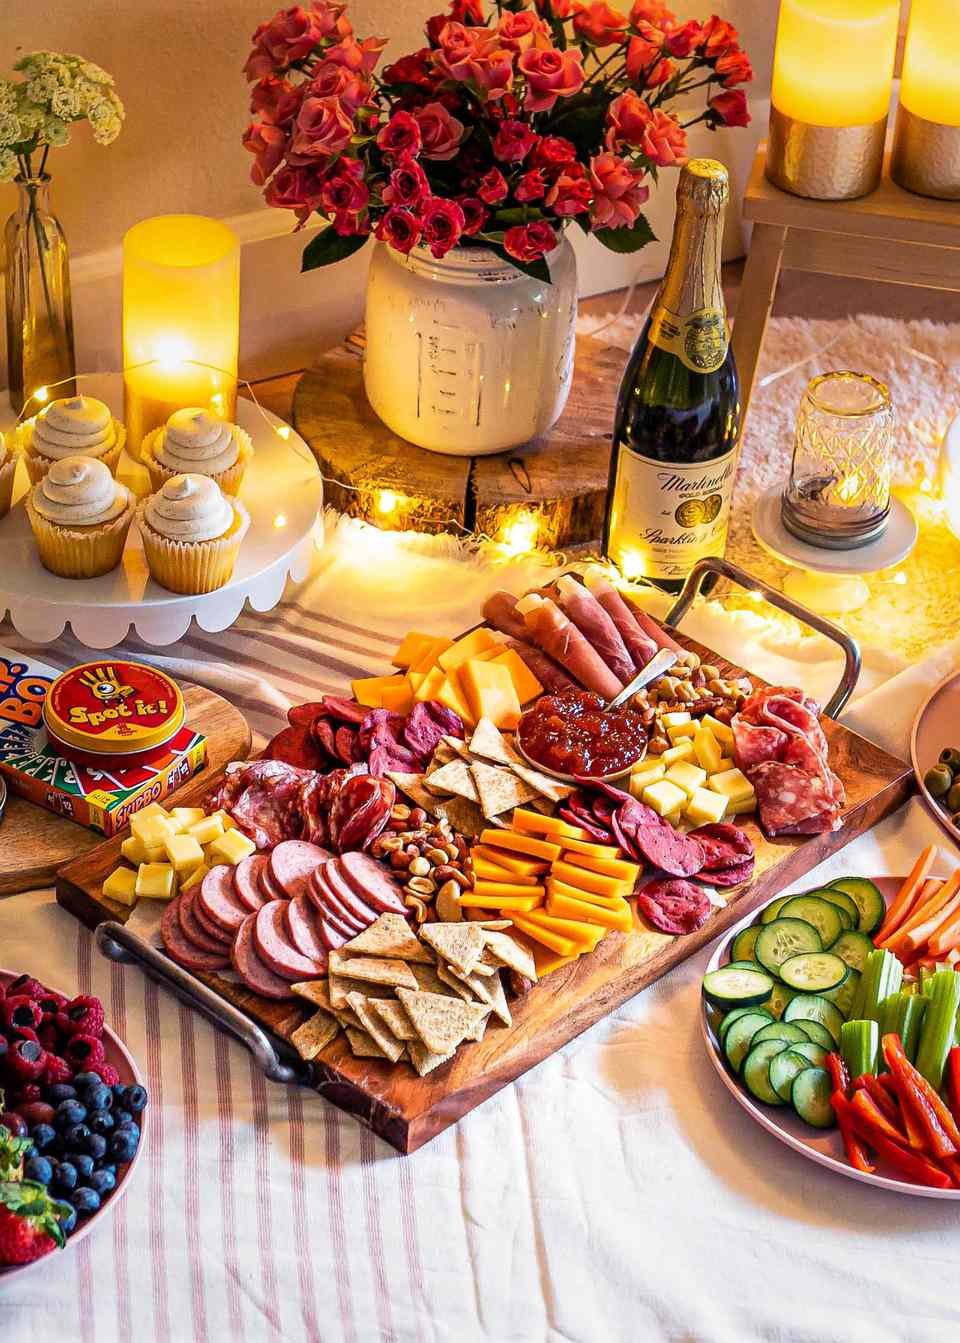 Meat and cheese board, fruit tray, heart shaped napkins, games, cupcakes, candles all layed out in Valentine's Day spread.